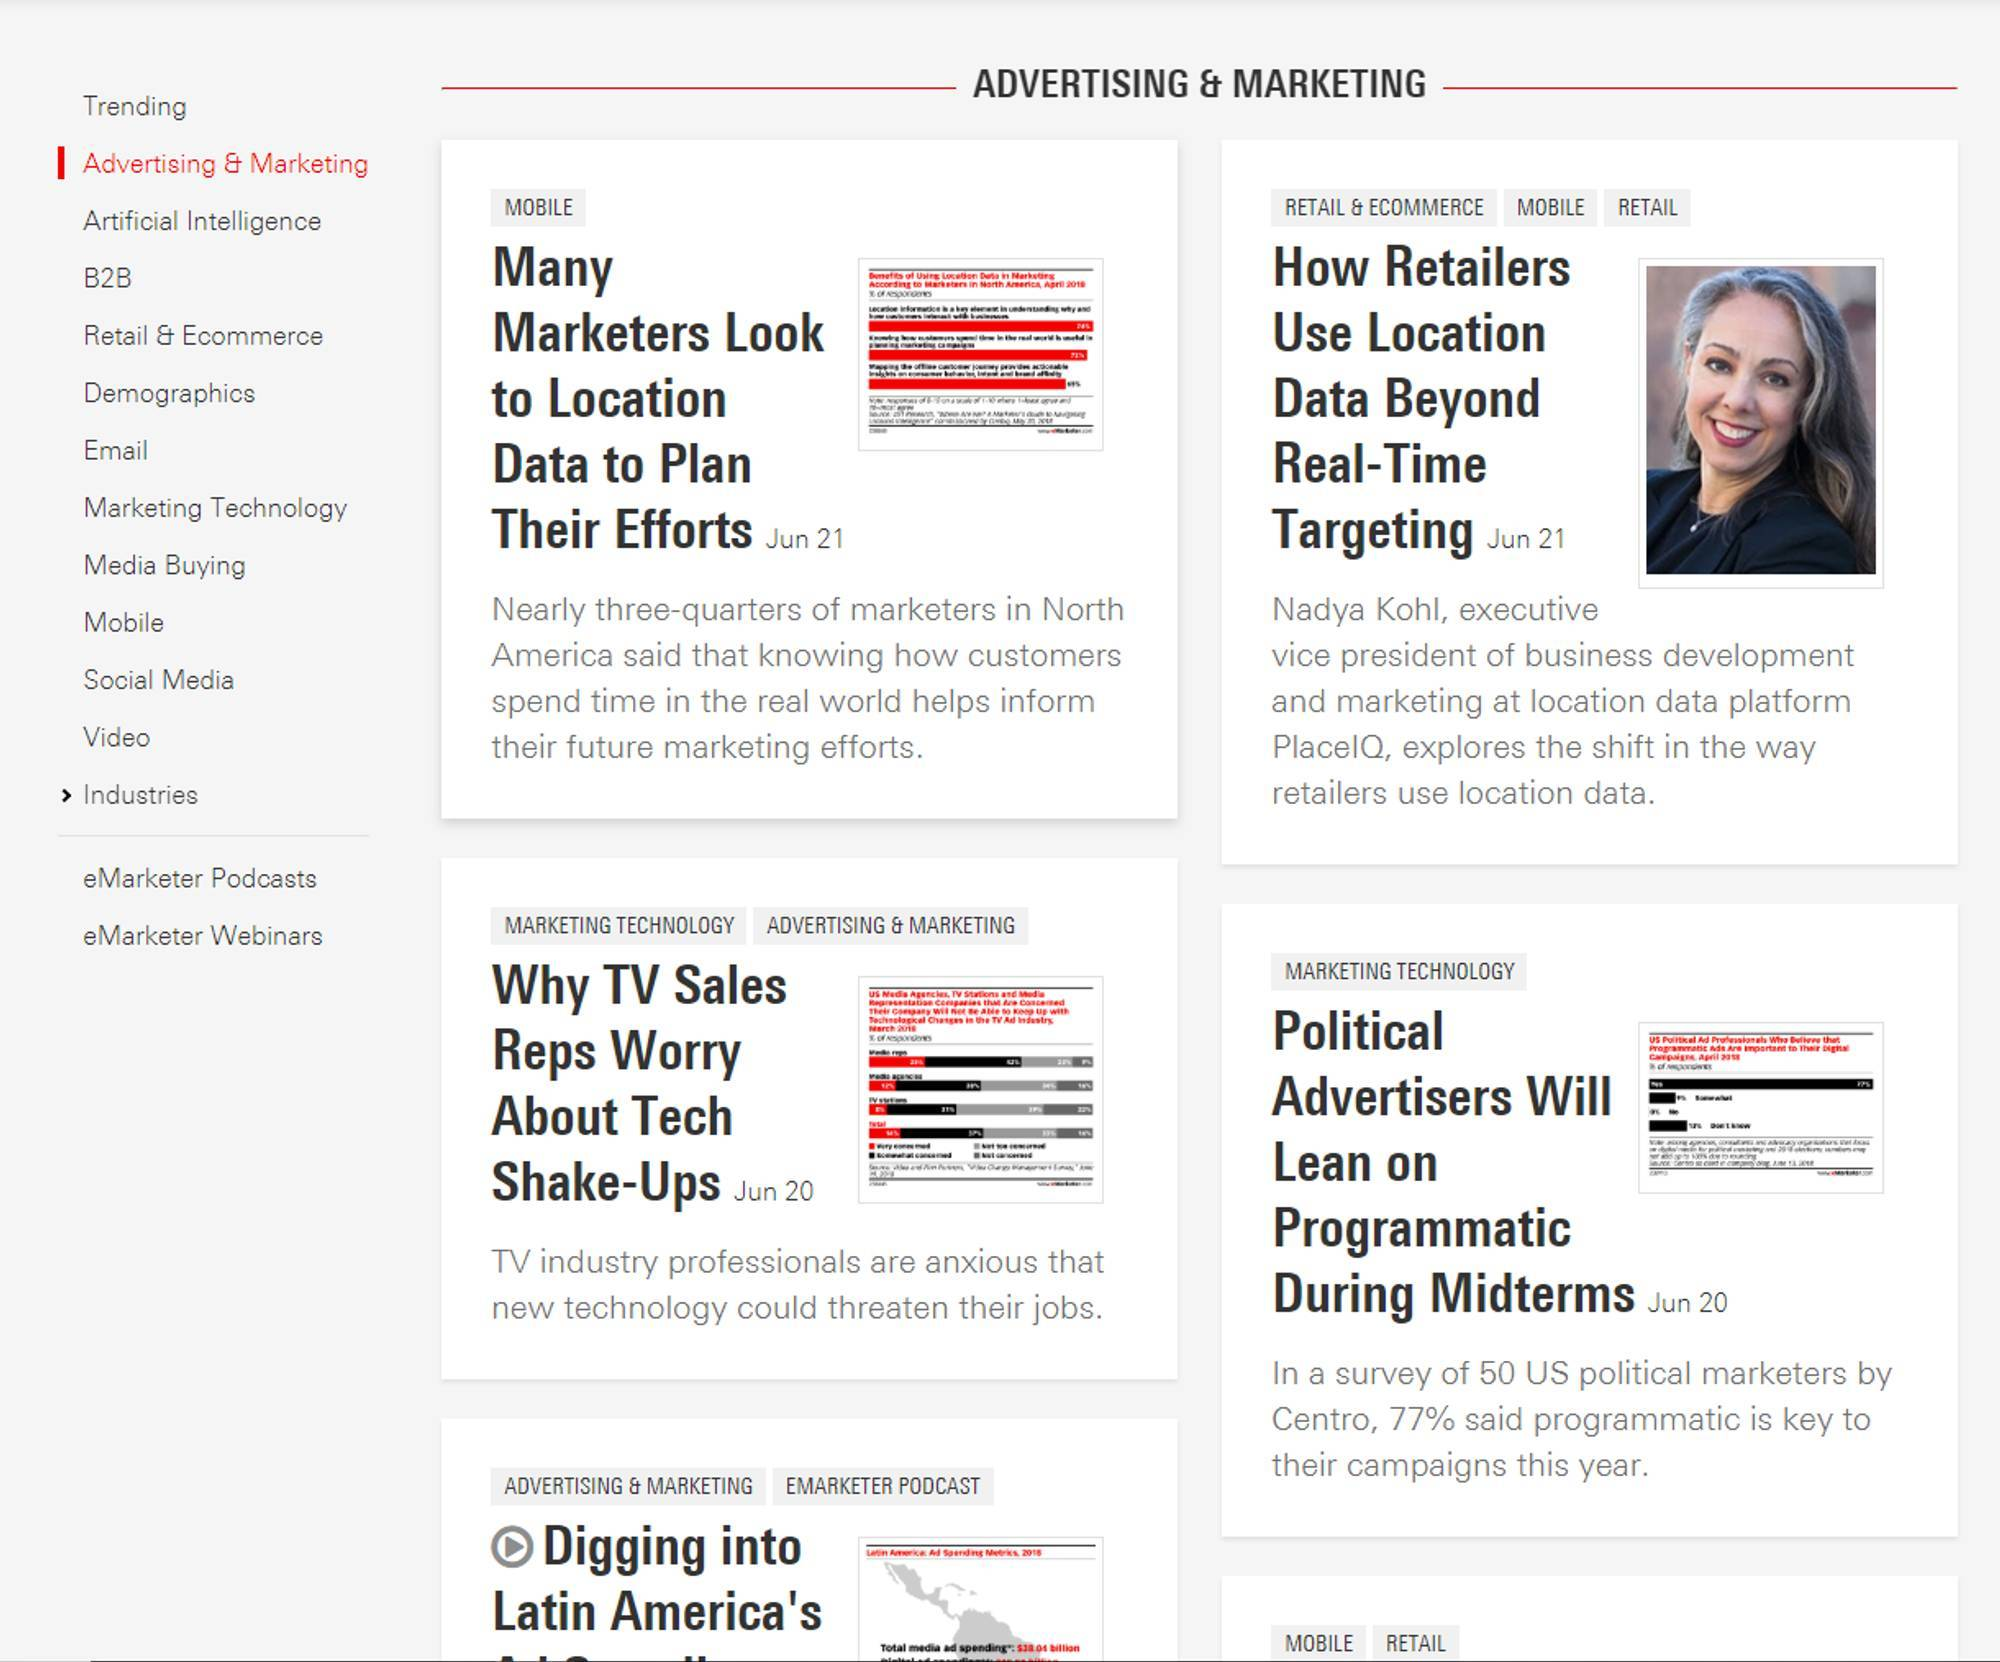 eMarketer's Recent Coverage on Retail